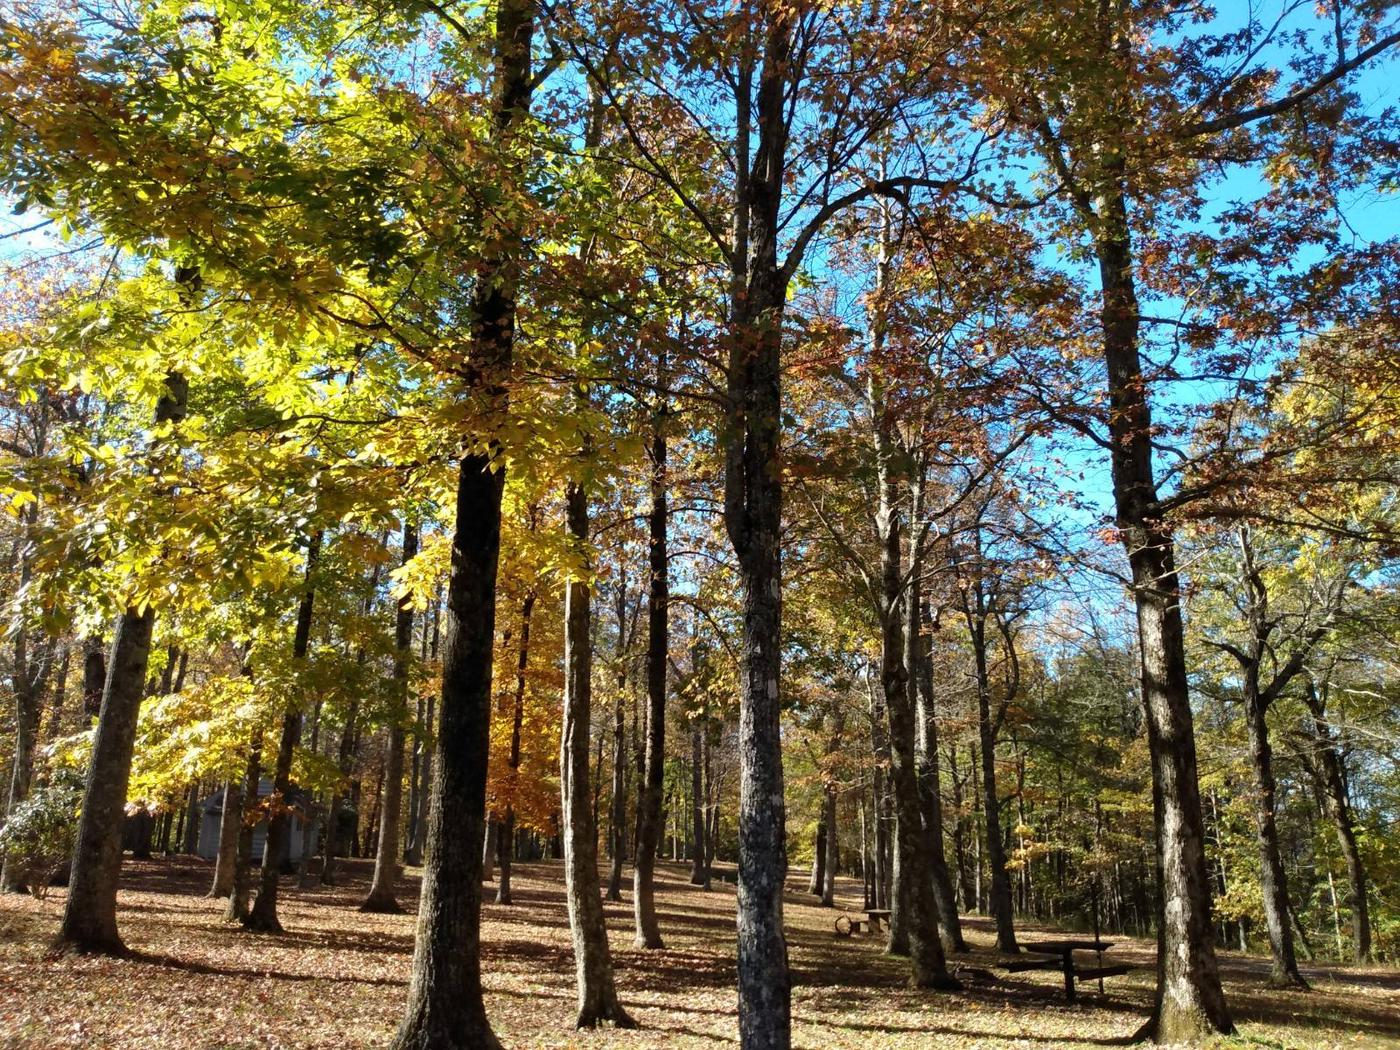 Peaceful fall day.The quiet peacefulness appeals to all who discover this campground.